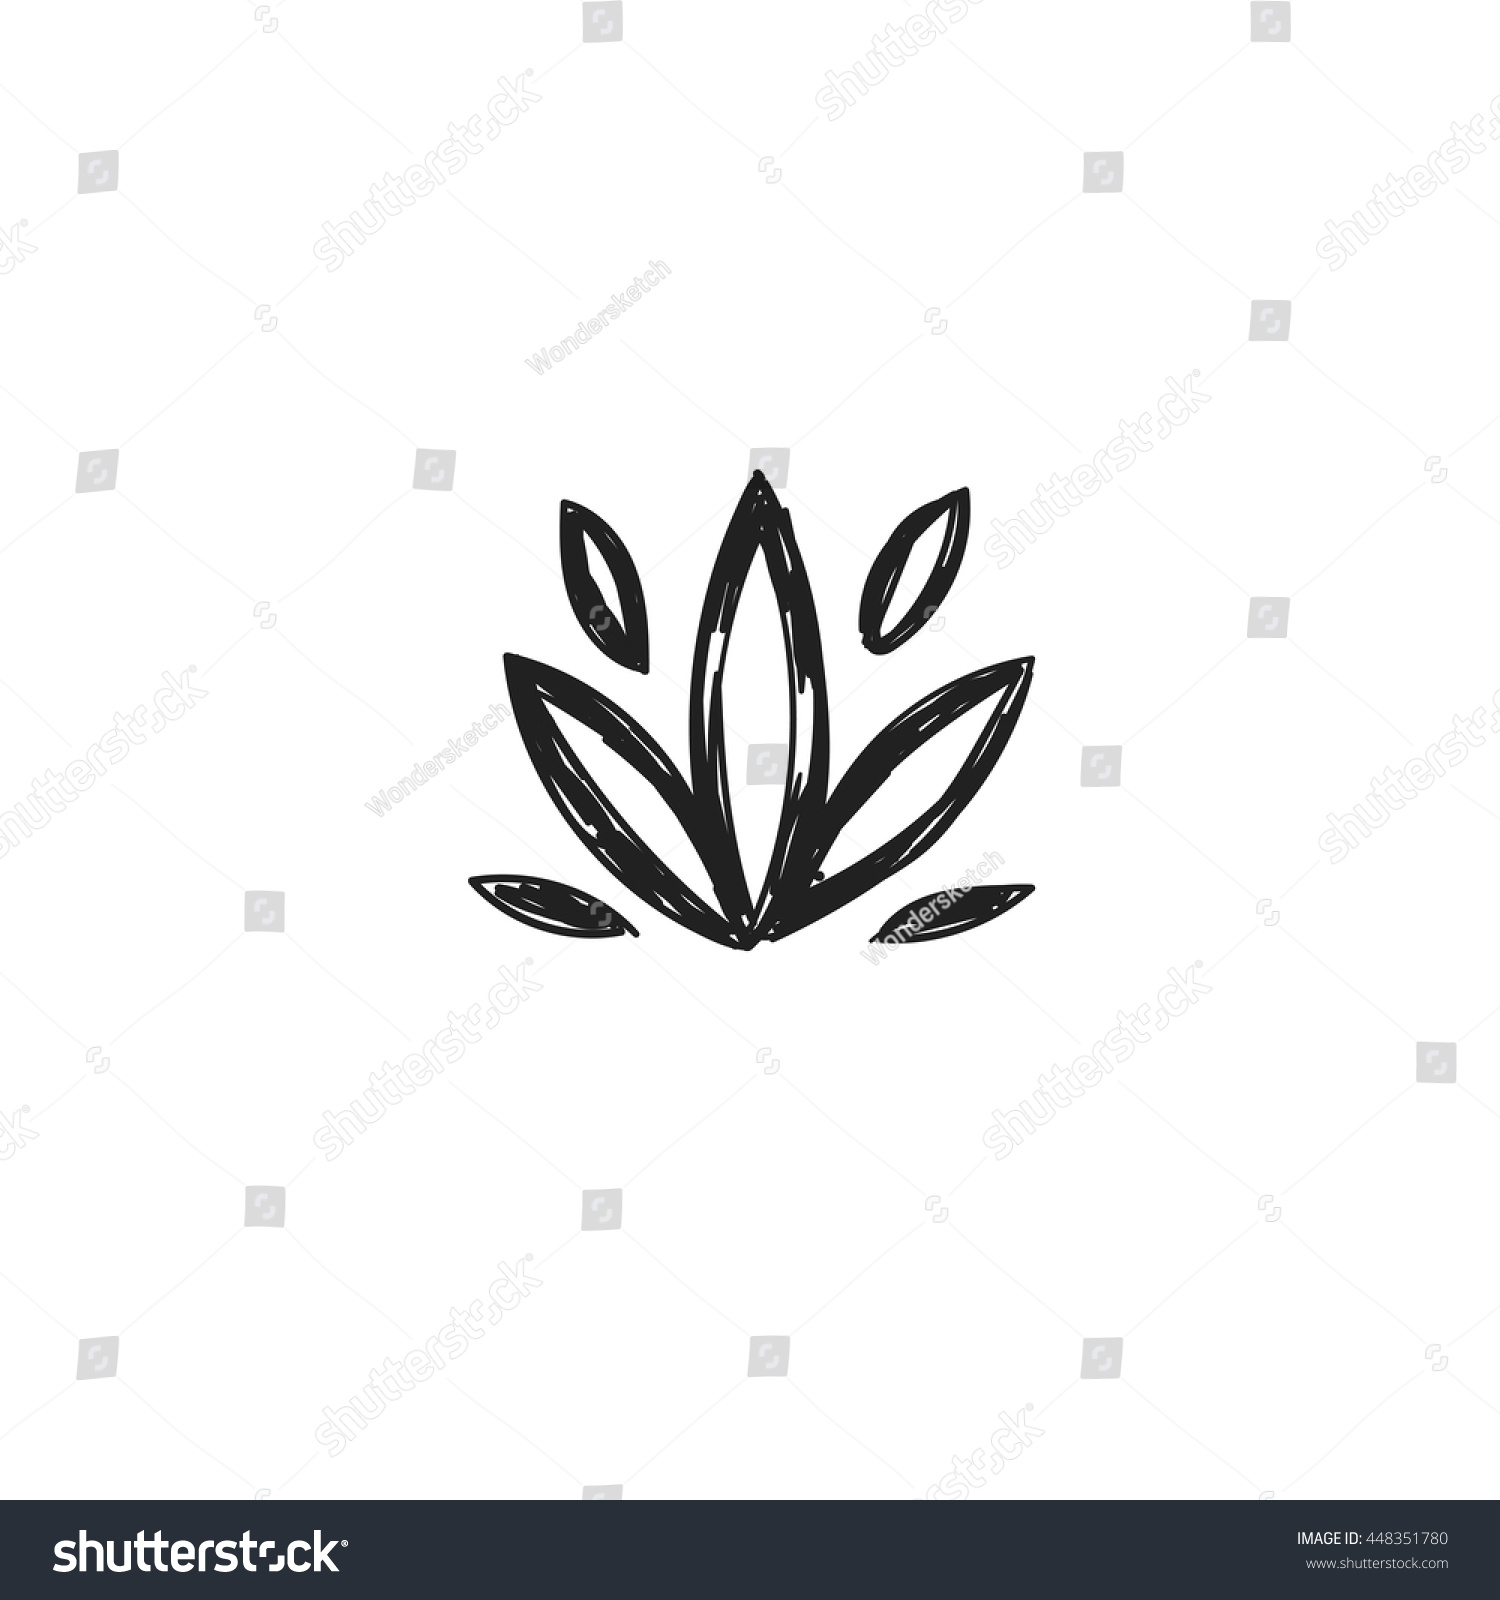 Lotus Flower Symbol Vector Handsketched Illustration Stock Vector